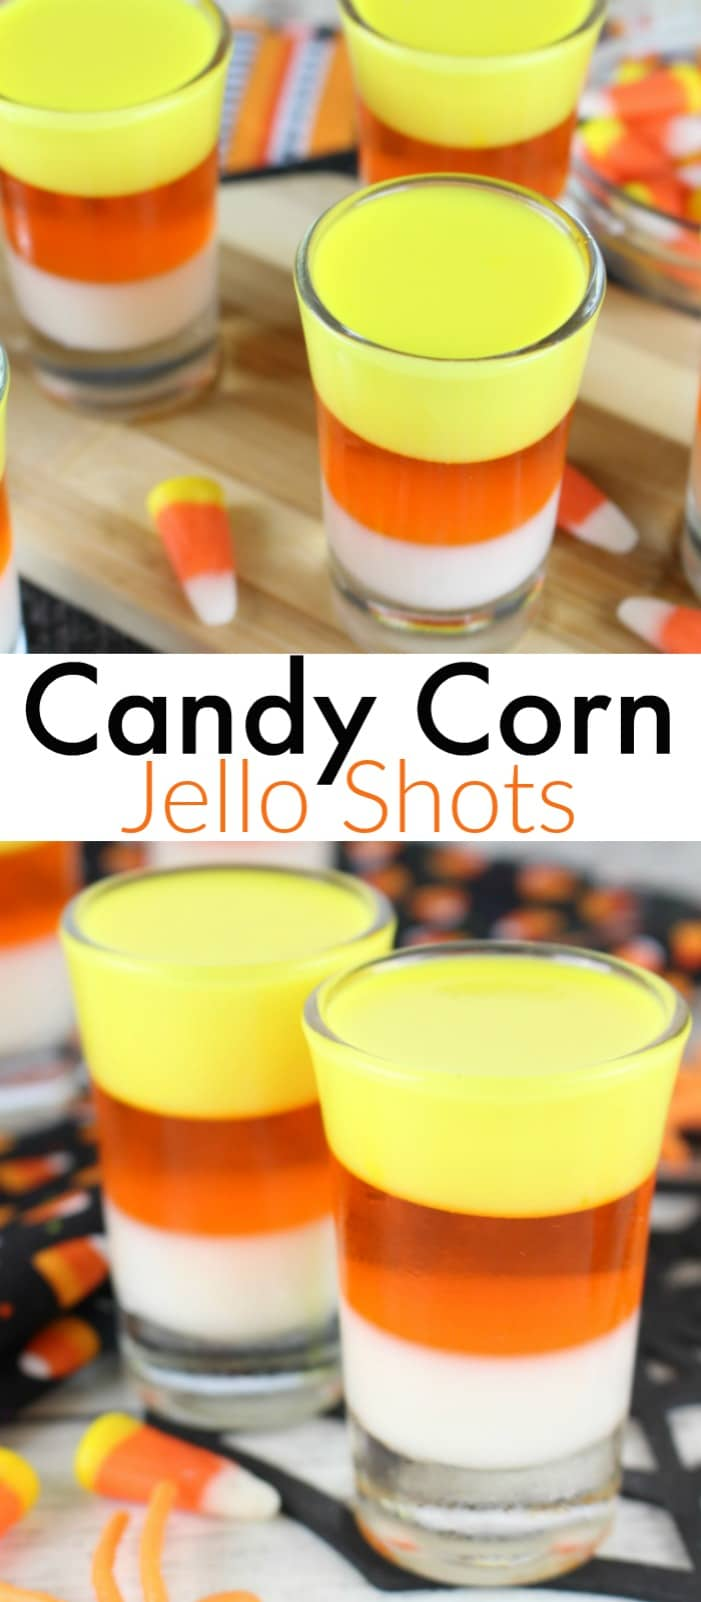 Superb Candy Corn Jello Shots Candy Corn Jello Shots Beauty Through Imion Knox Unflavored Gelatin Nails Knox Unflavored Gelatin Nutrition houzz-02 Knox Unflavored Gelatin